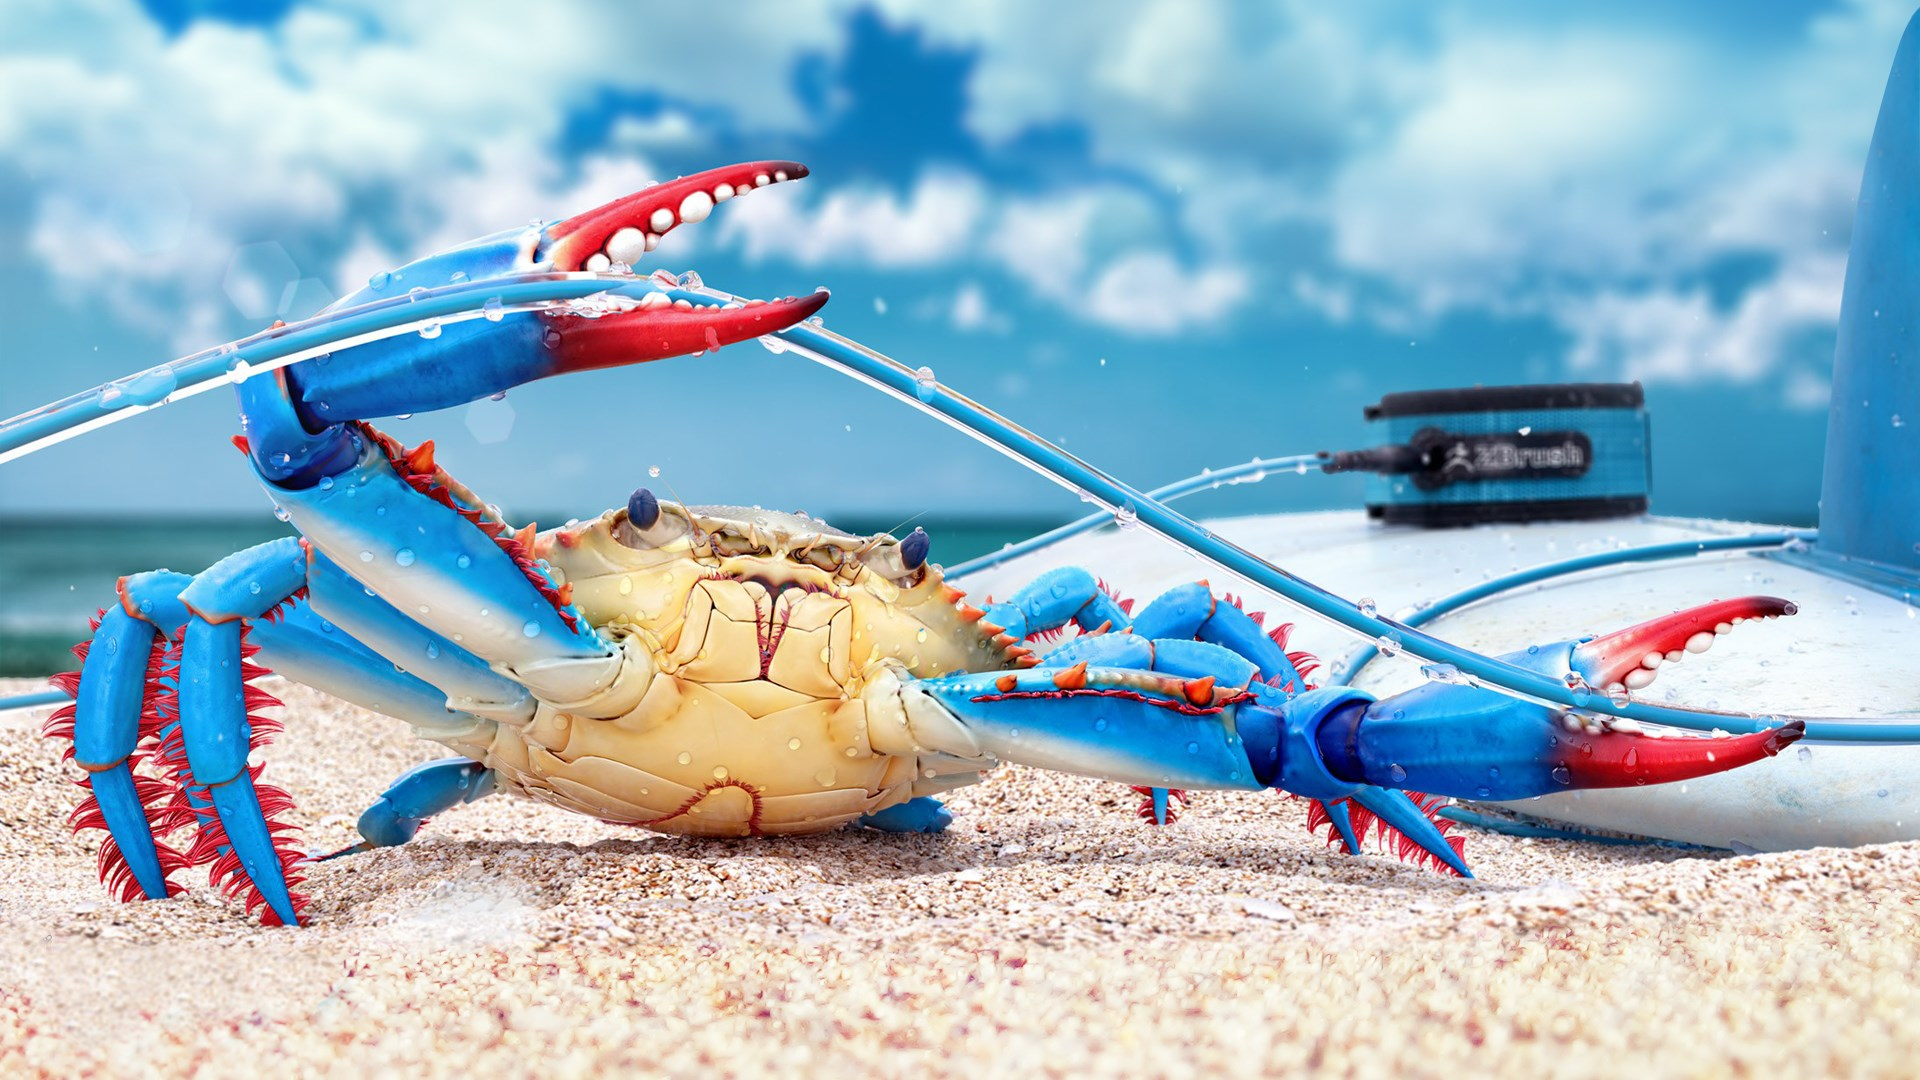 Crab Wallpapers Pictures Images HD Wallpapers Download Free Images Wallpaper [1000image.com]